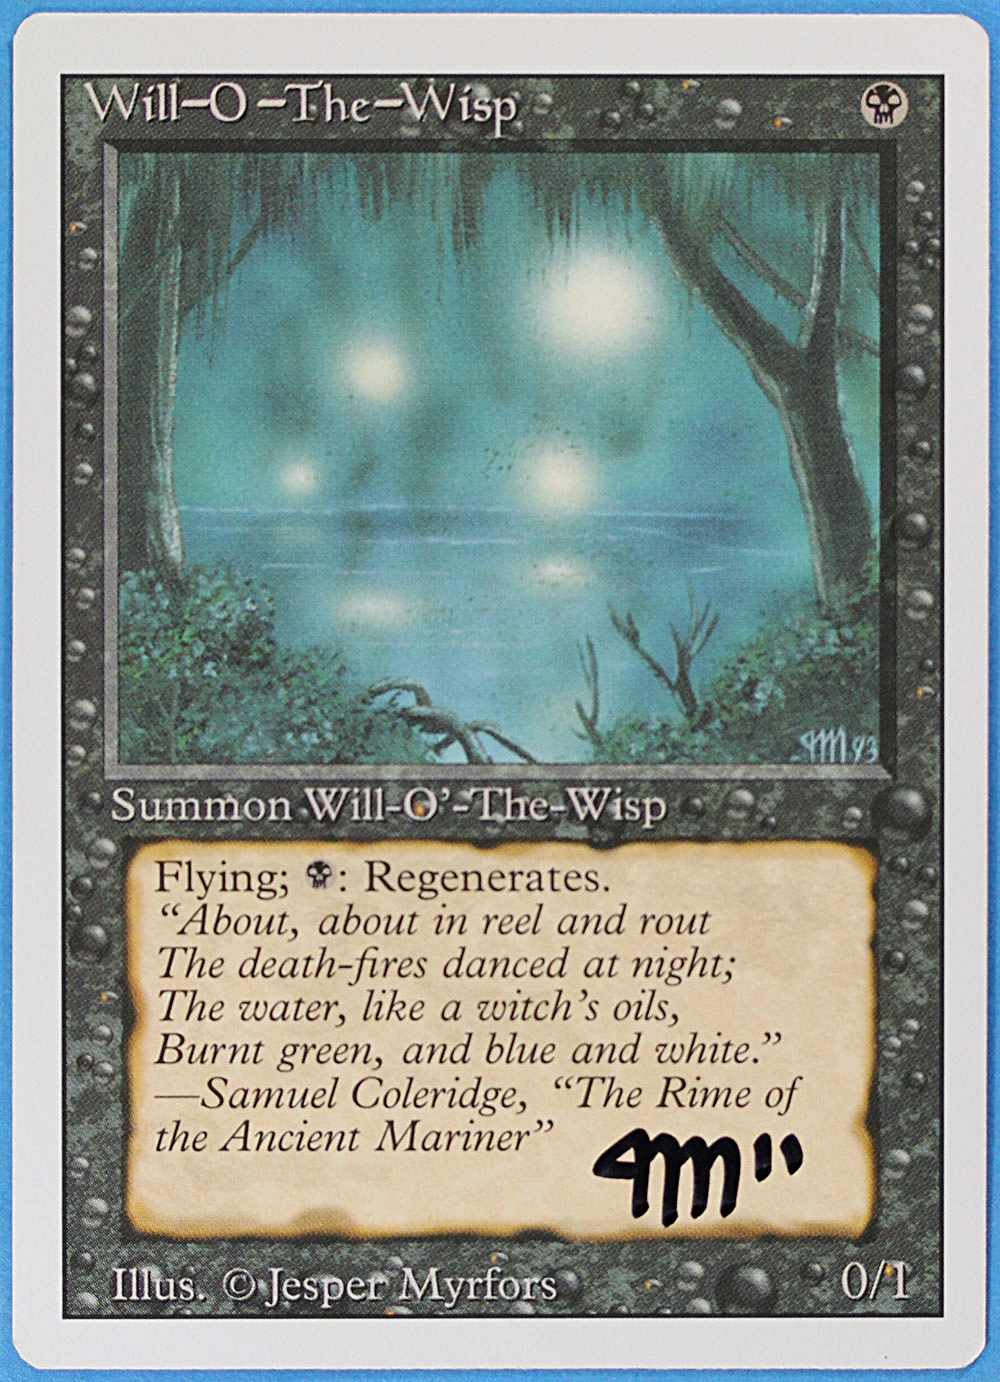 Will-O'- The Wisp Card from Magic  the Gathering, Signed by Jesper Myrfors